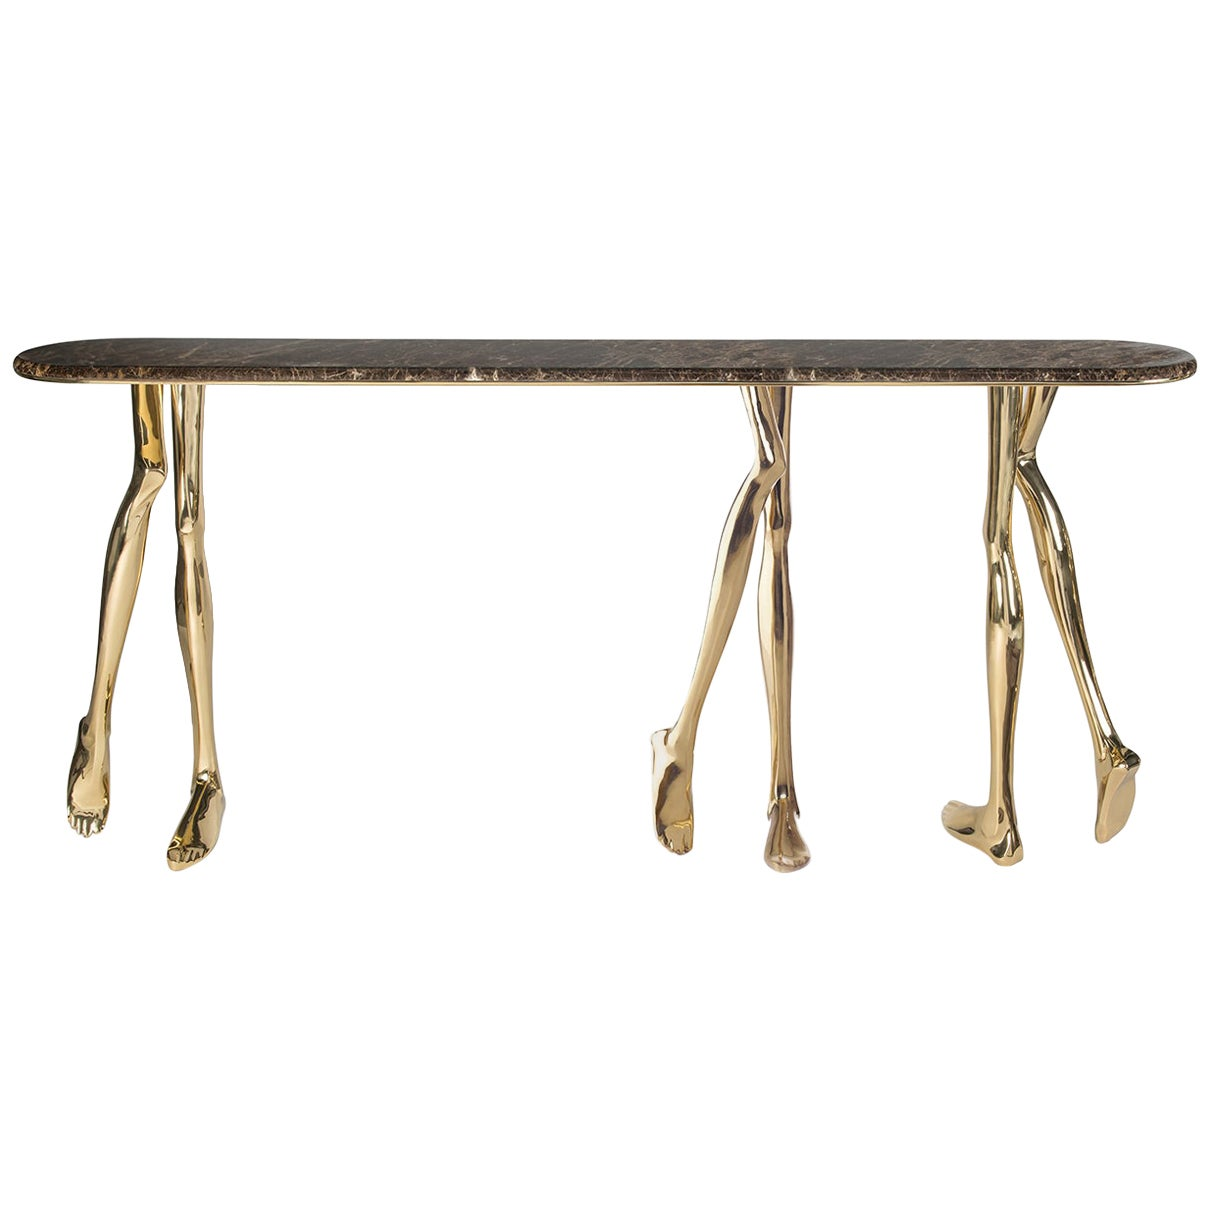 21st Century Sculptural Monroe Console Table, Polished Brass and Brown Marble